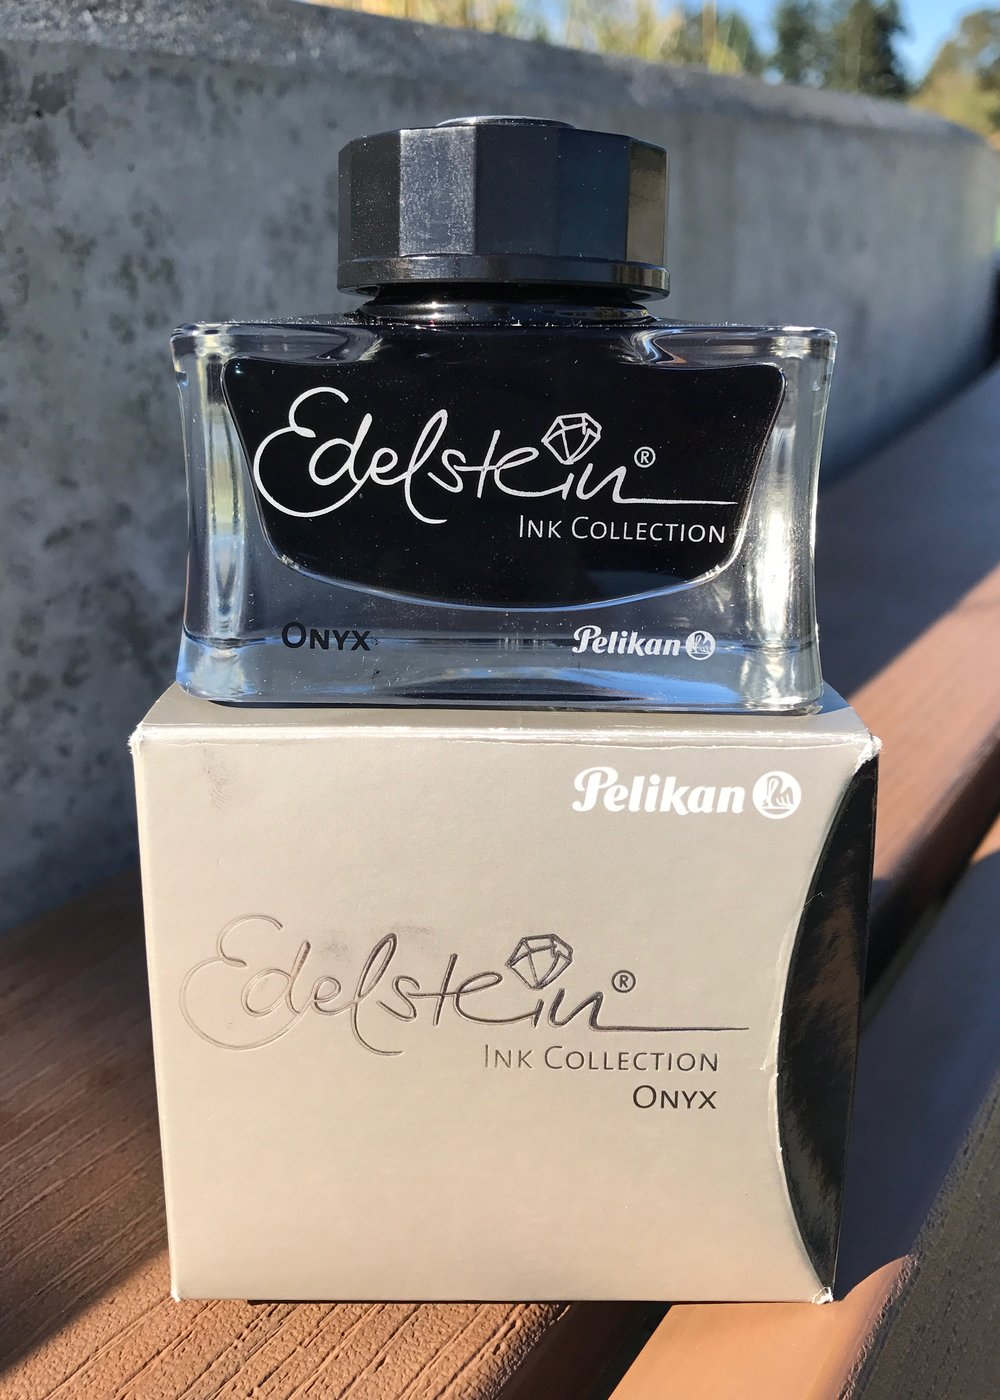 The bottle: - Pelikan Edelstein bottles look amazing. They are made of glass, and have a heavy, solid base. They aren't necessarily the best for filling pens, but they are beautiful.